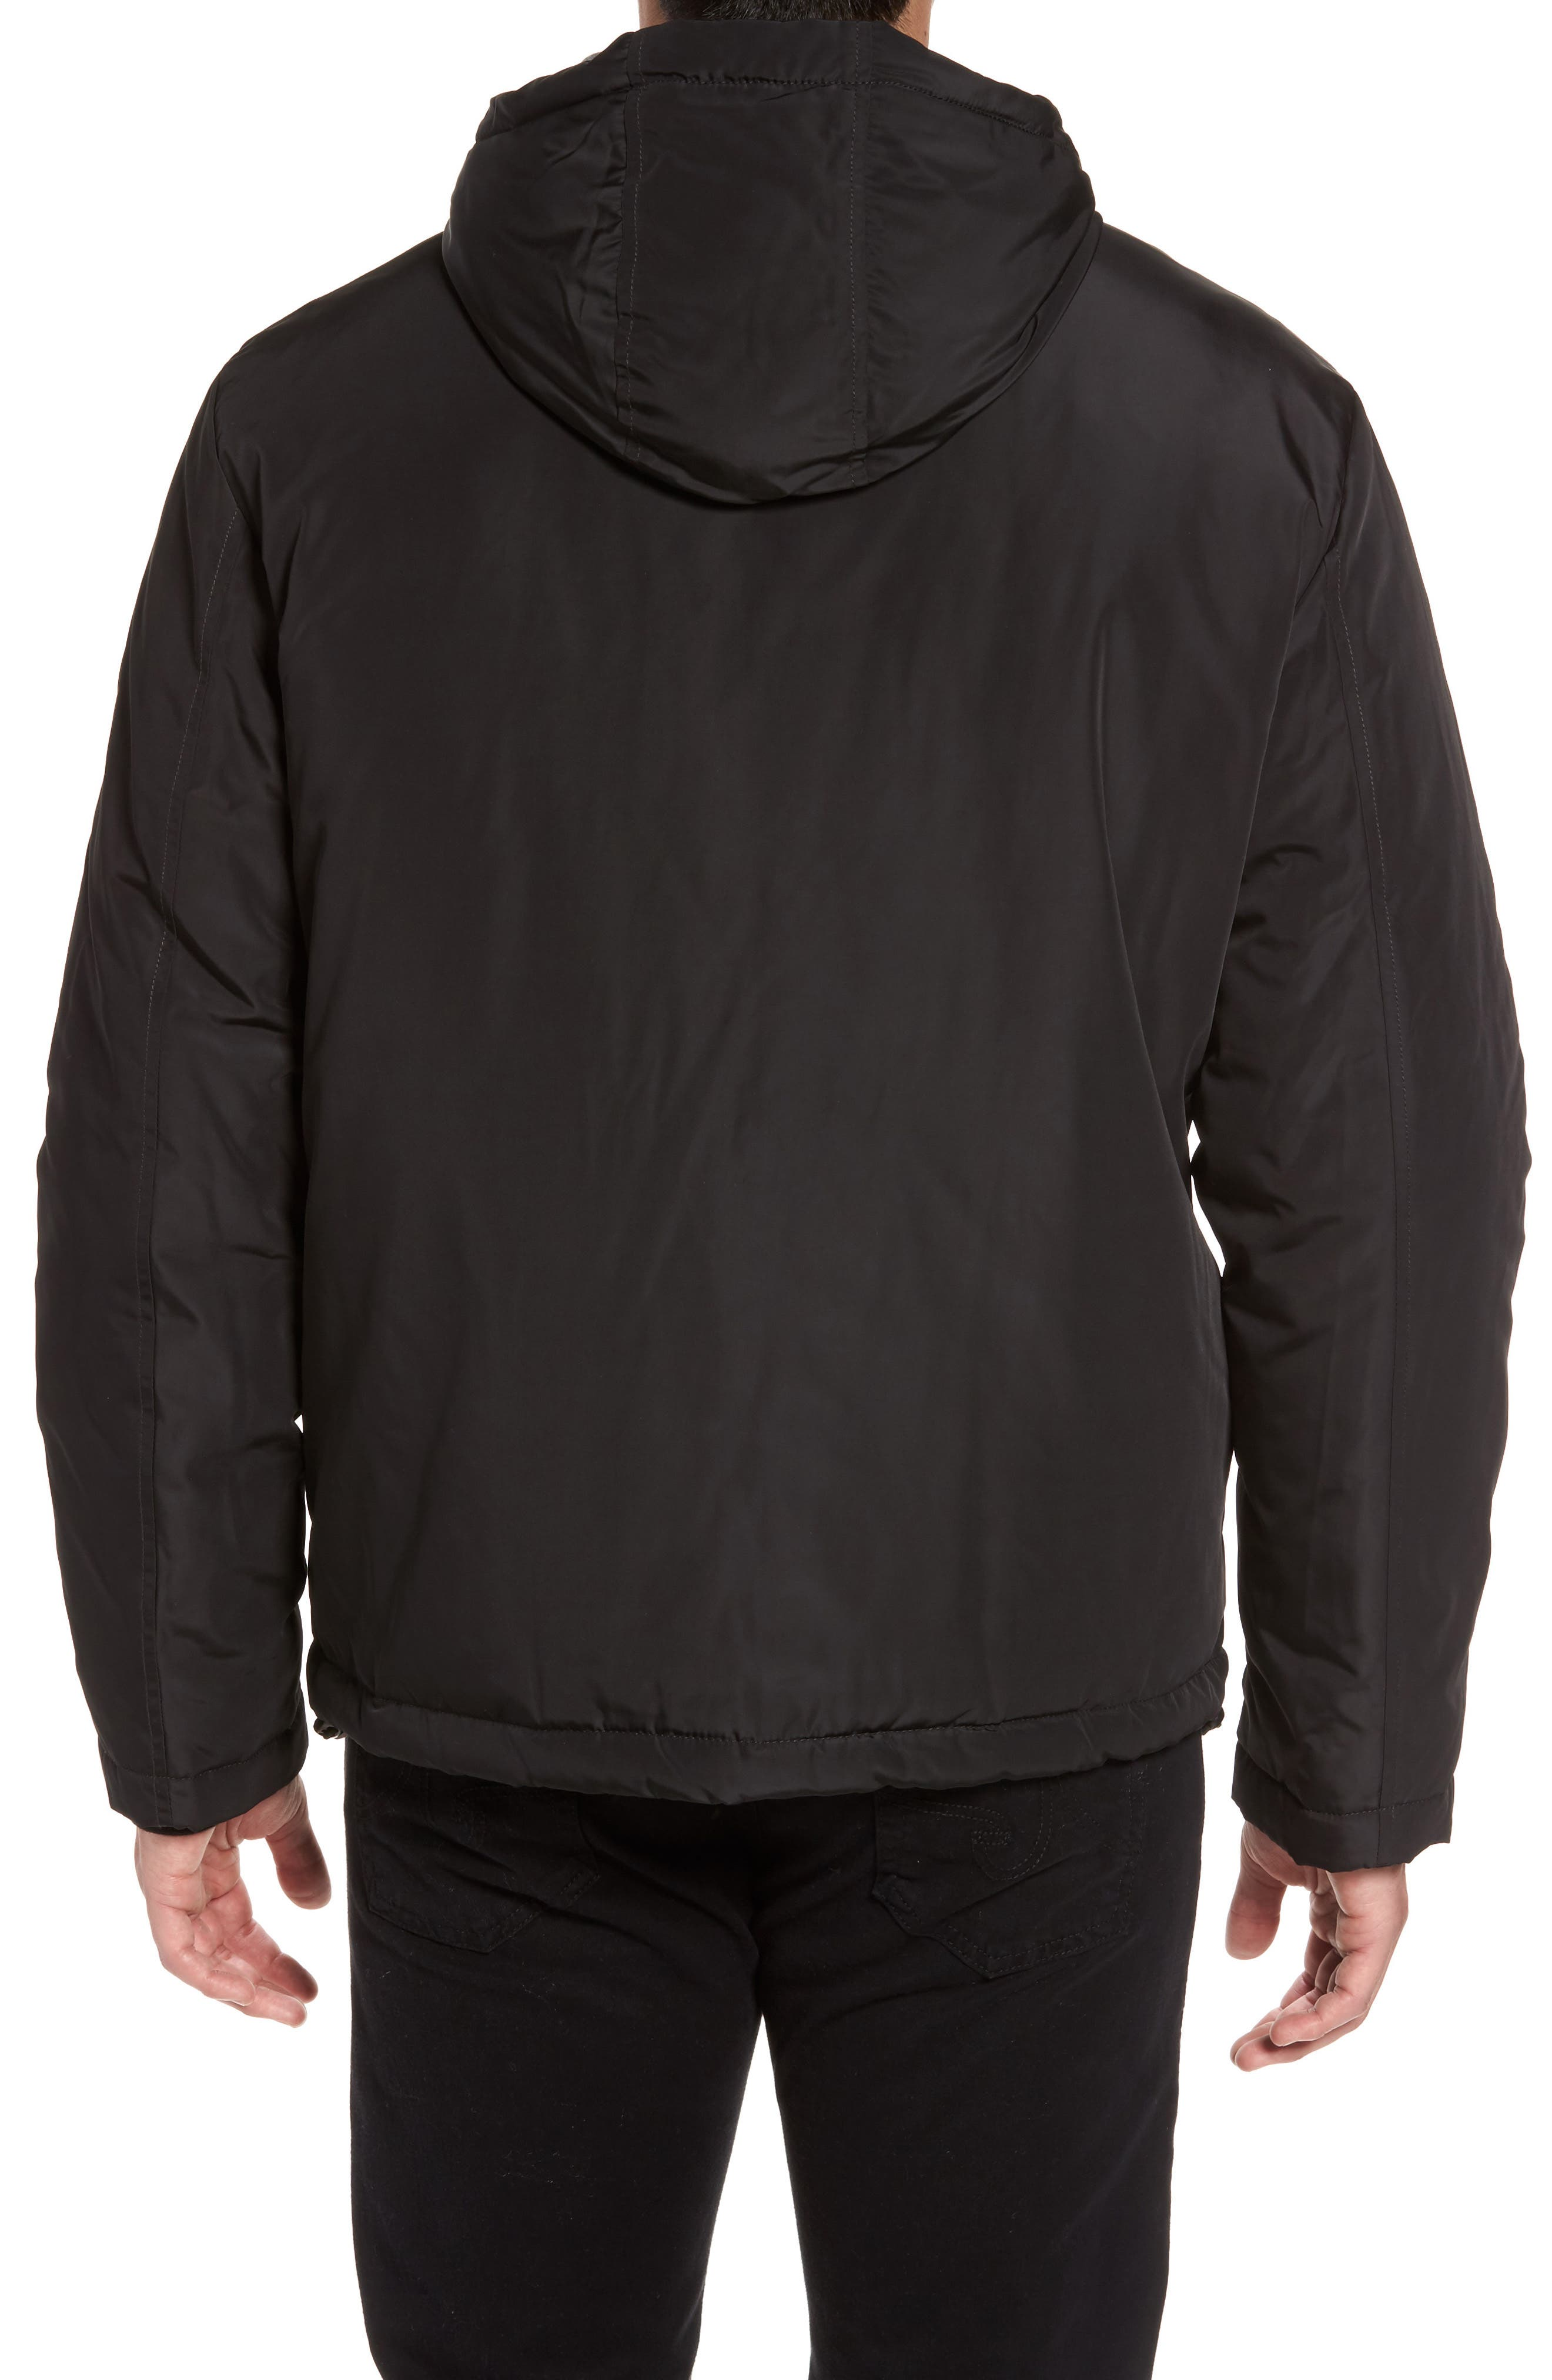 Water Resistant Insulated Jacket,                             Alternate thumbnail 2, color,                             Black